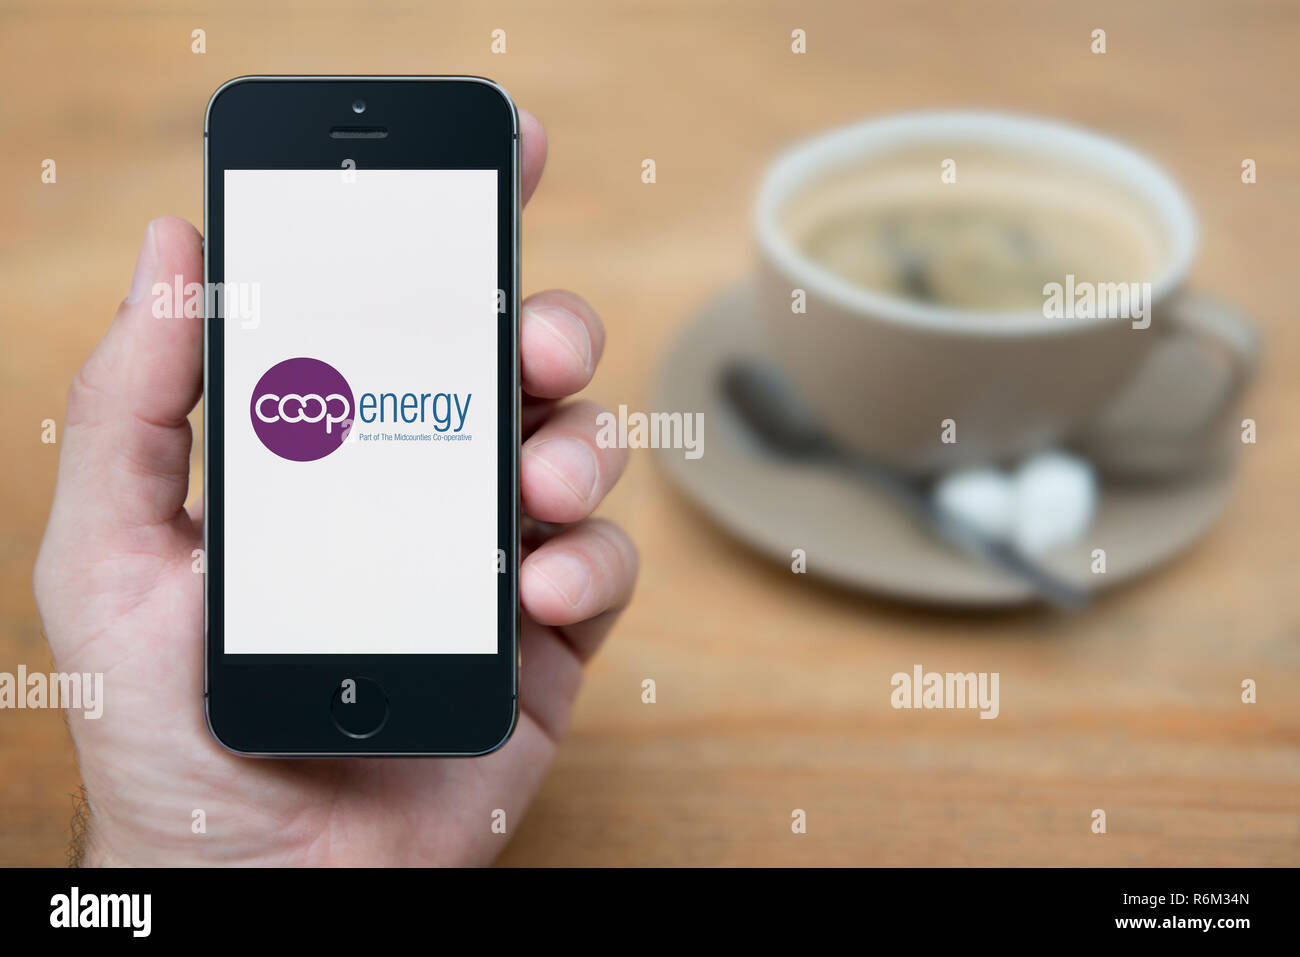 A man looks at his iPhone which displays the Co-op Energy logo (Editorial use only). - Stock Image